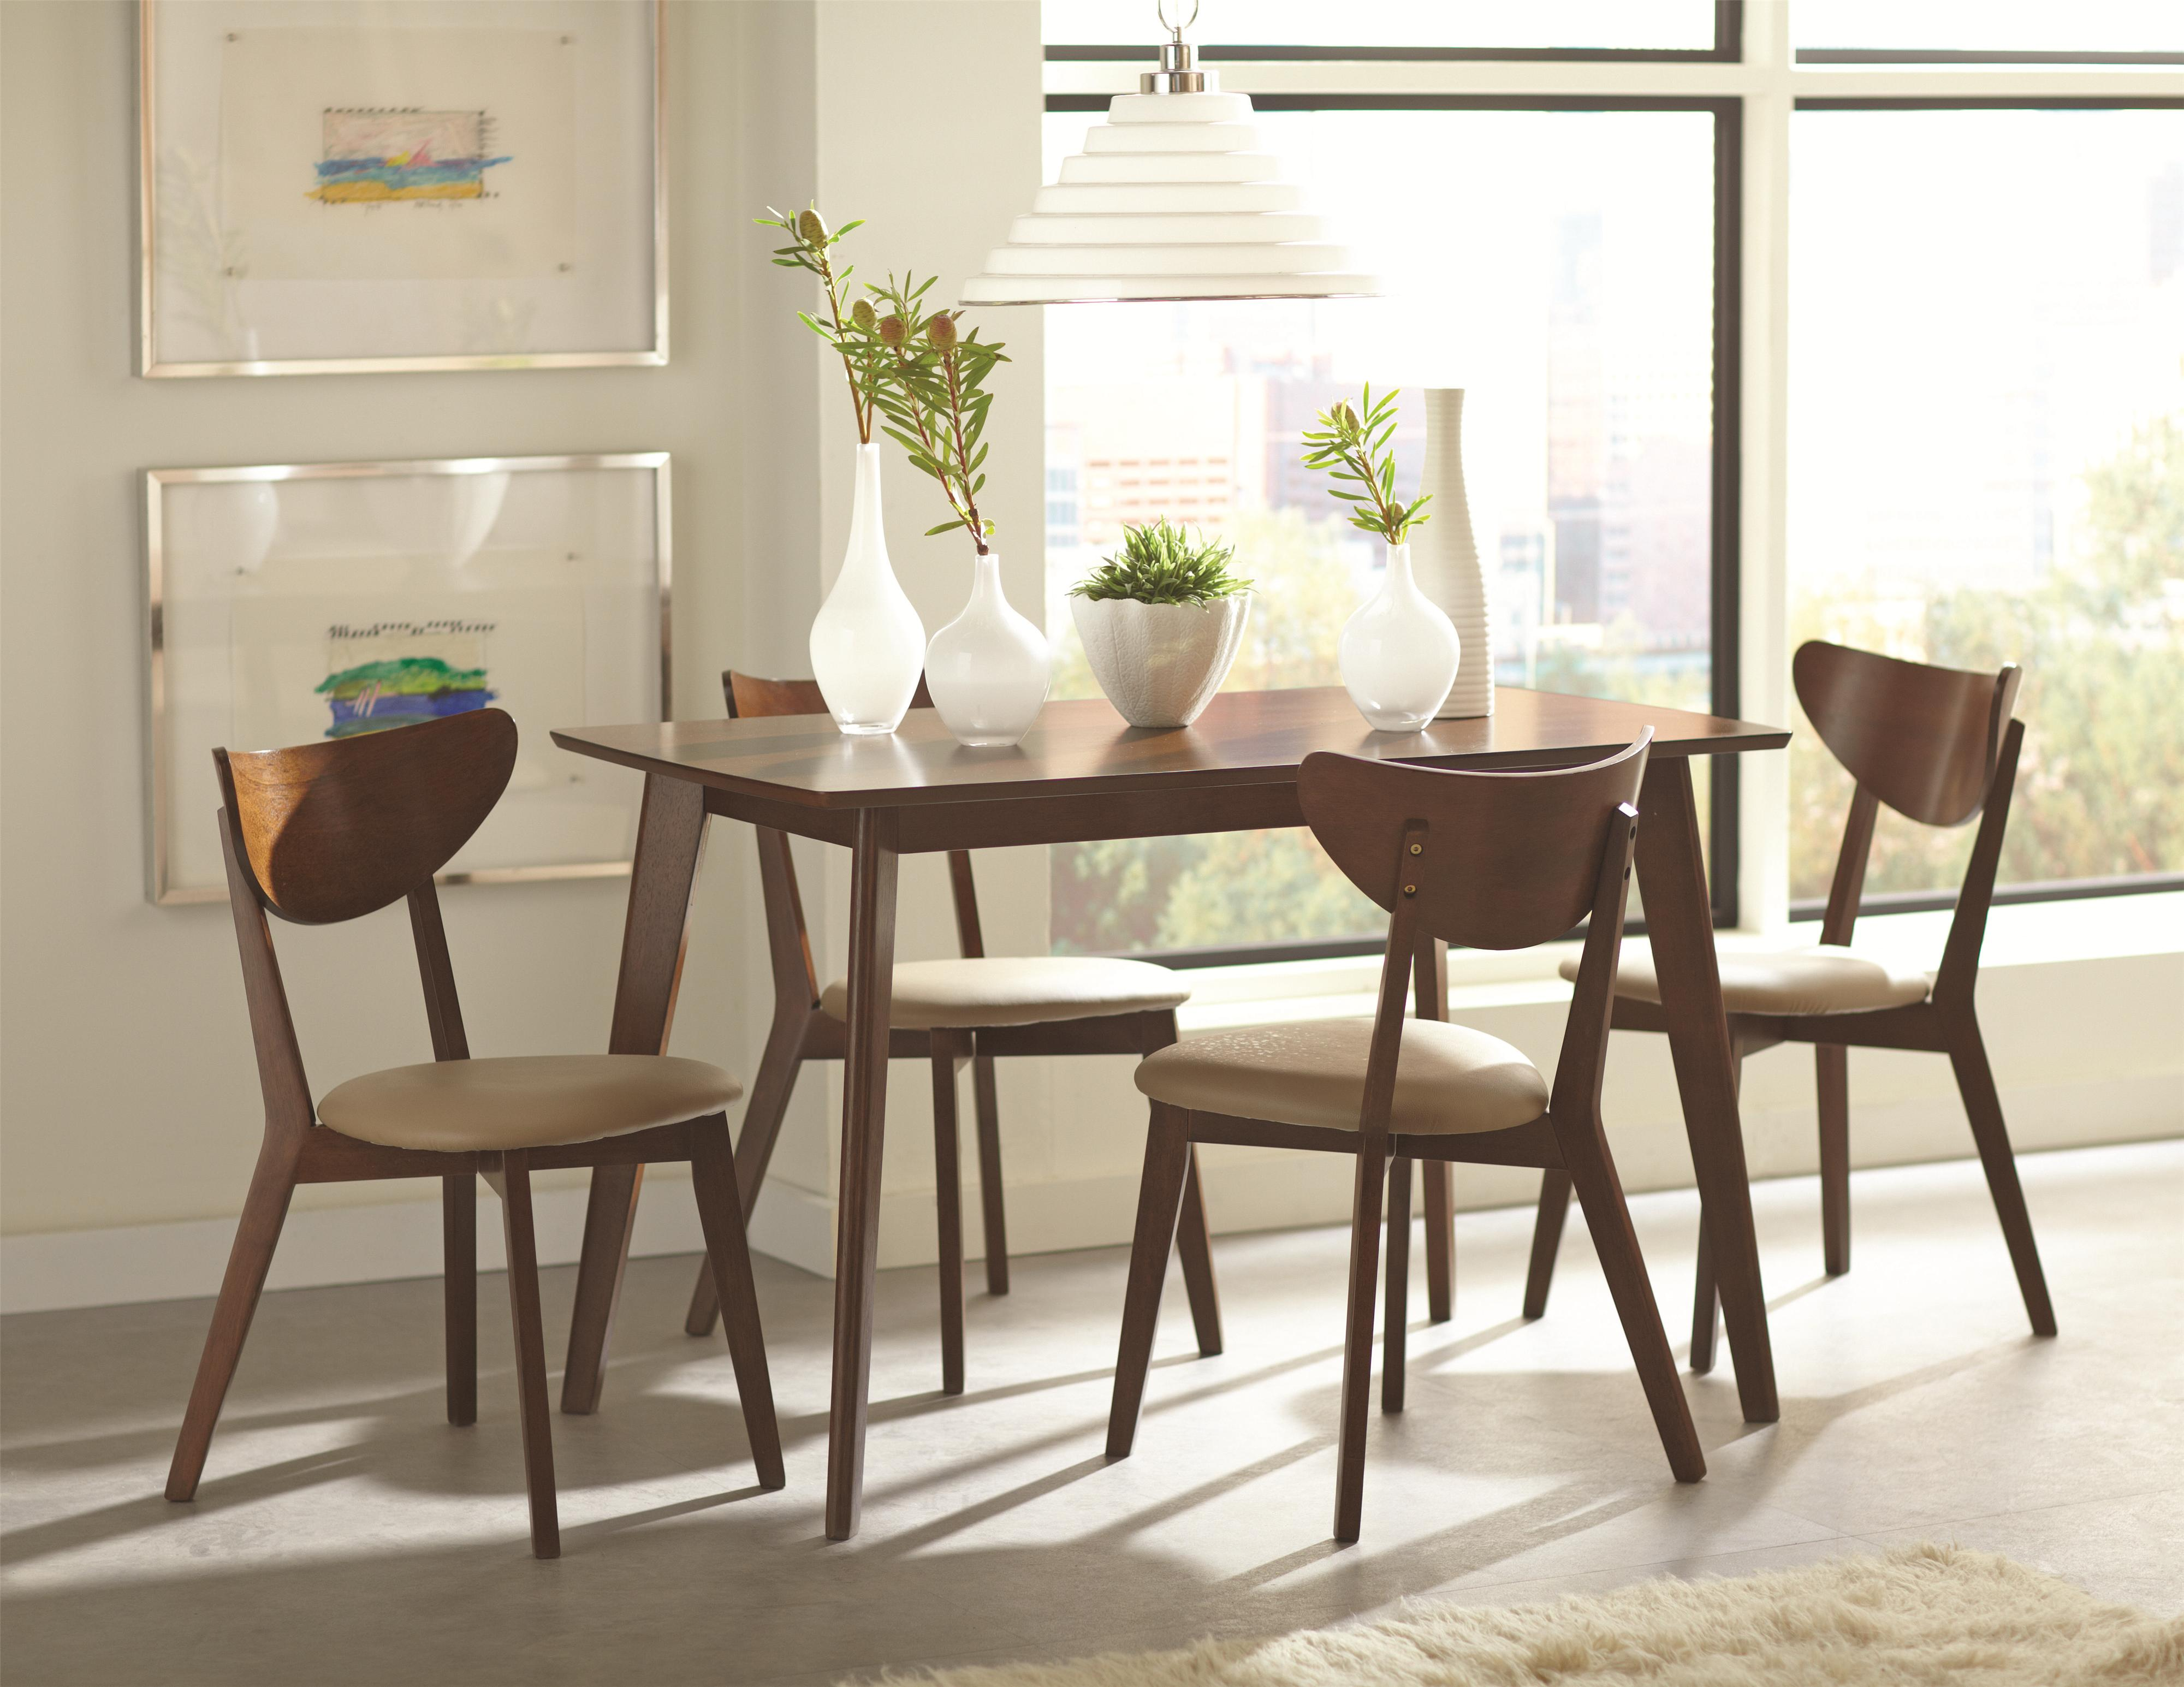 at dining chair big design from table chairs great sets perfect lots and for room kitchen tables